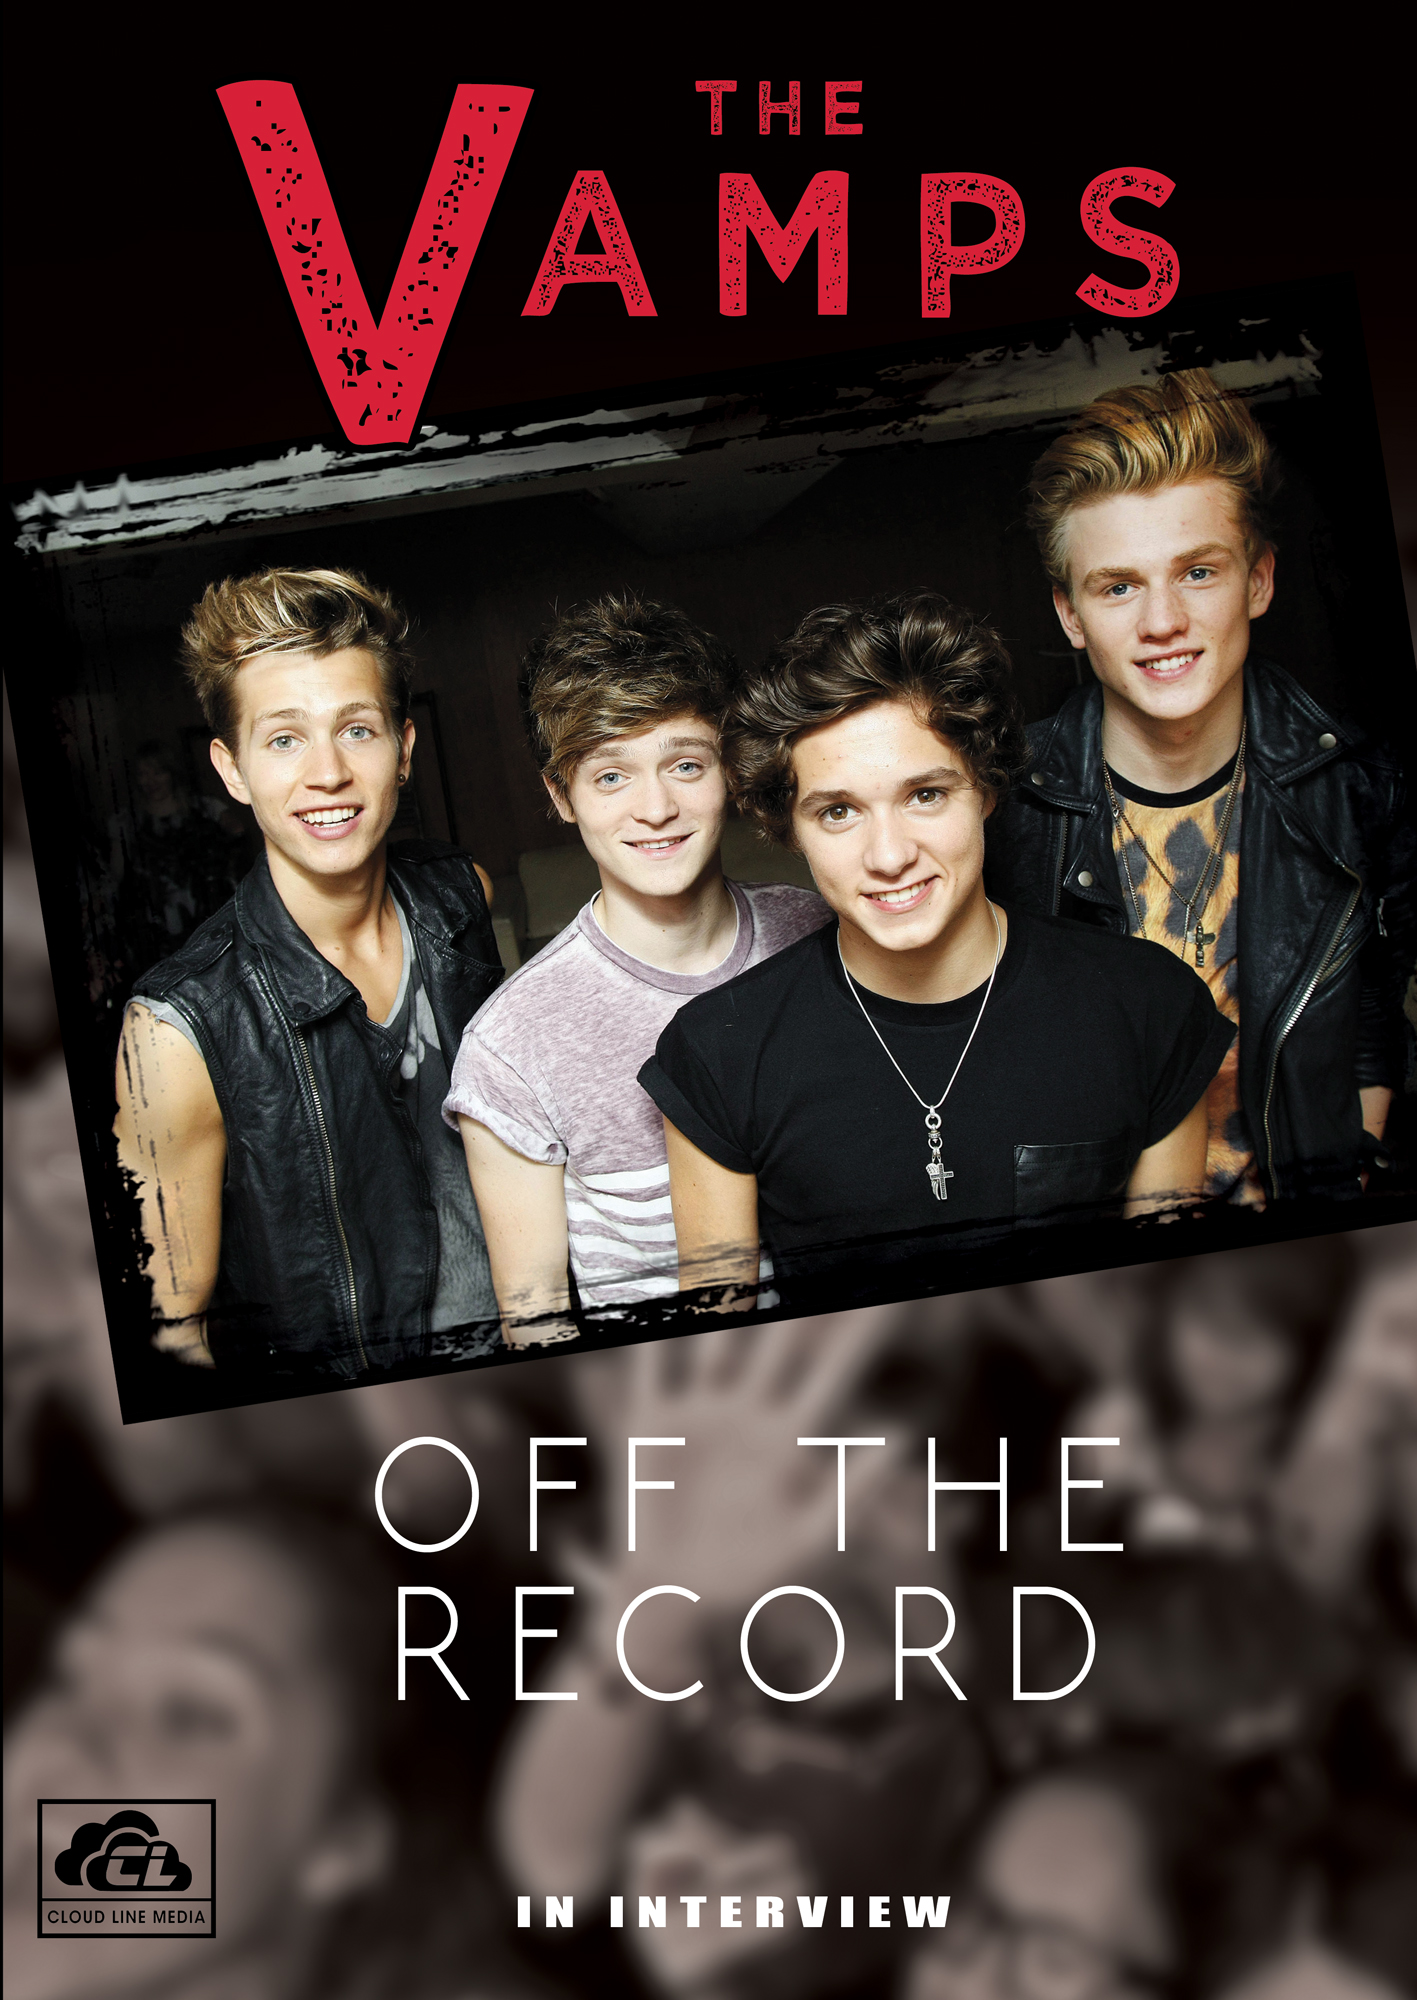 The Vamps: Off the Record